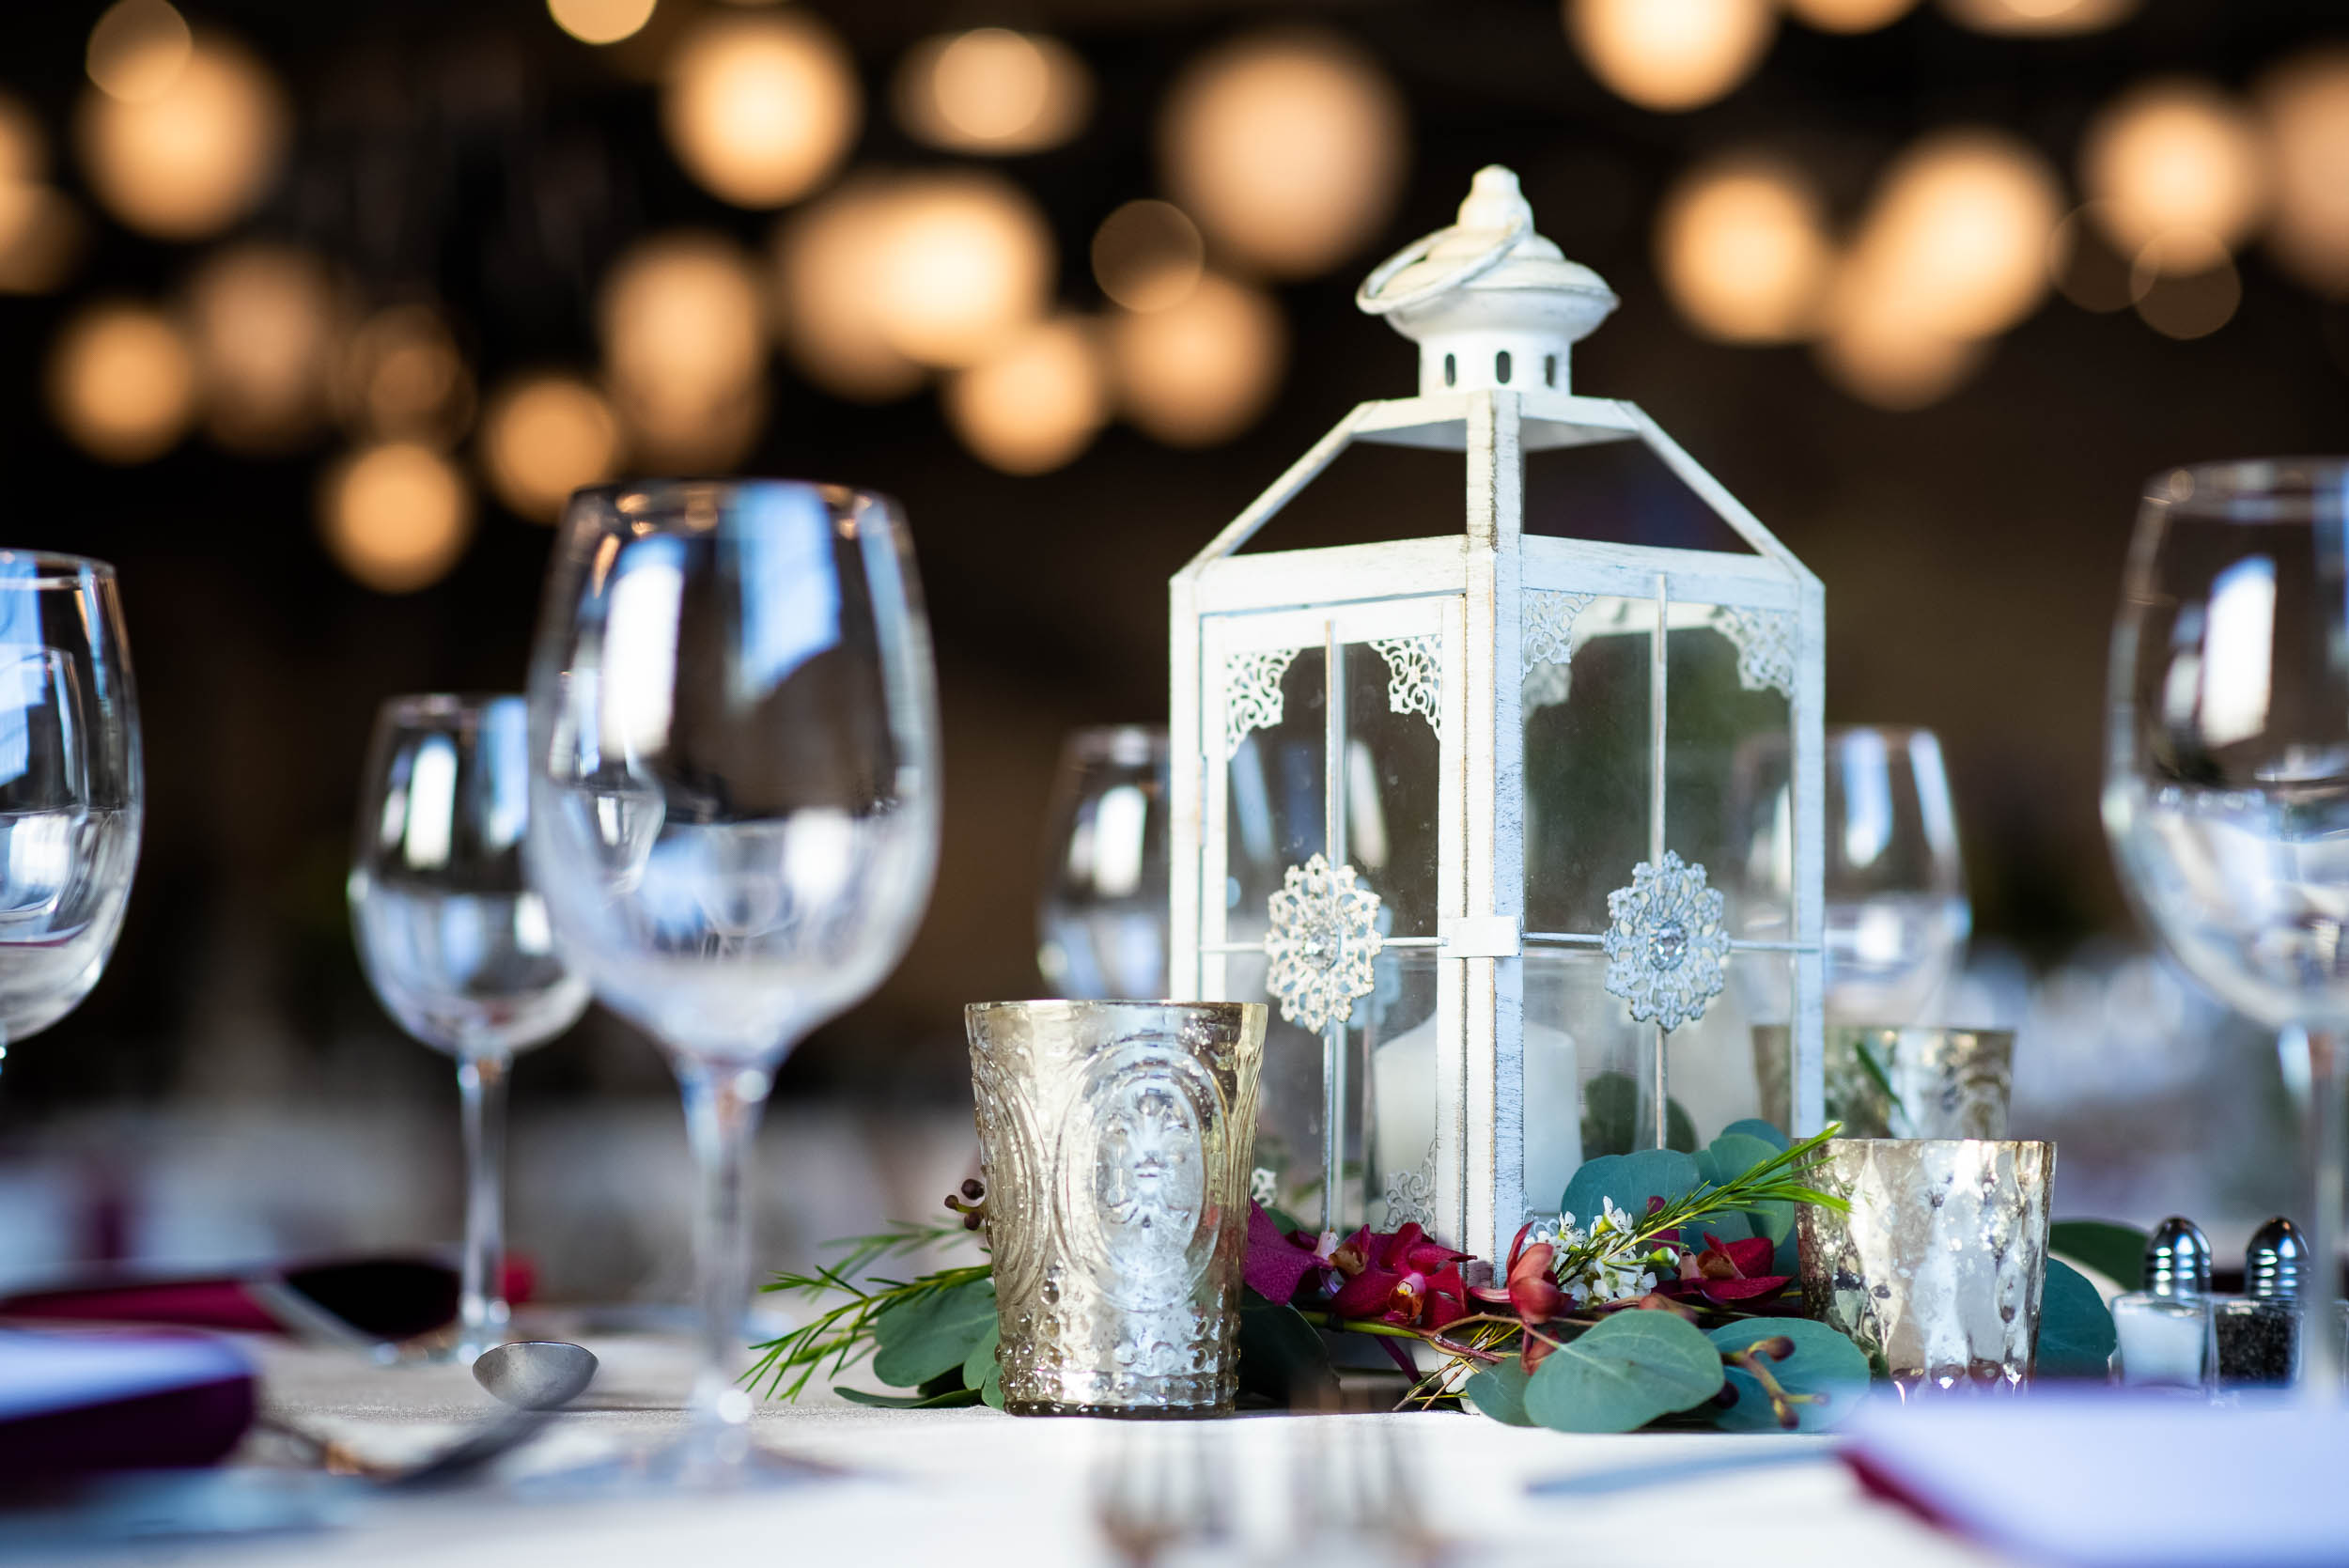 Lantern wedding centerpieces: Modern industrial Chicago wedding inside Prairie Street Brewhouse captured by J. Brown Photography. Find more wedding ideas at jbrownphotography.com!